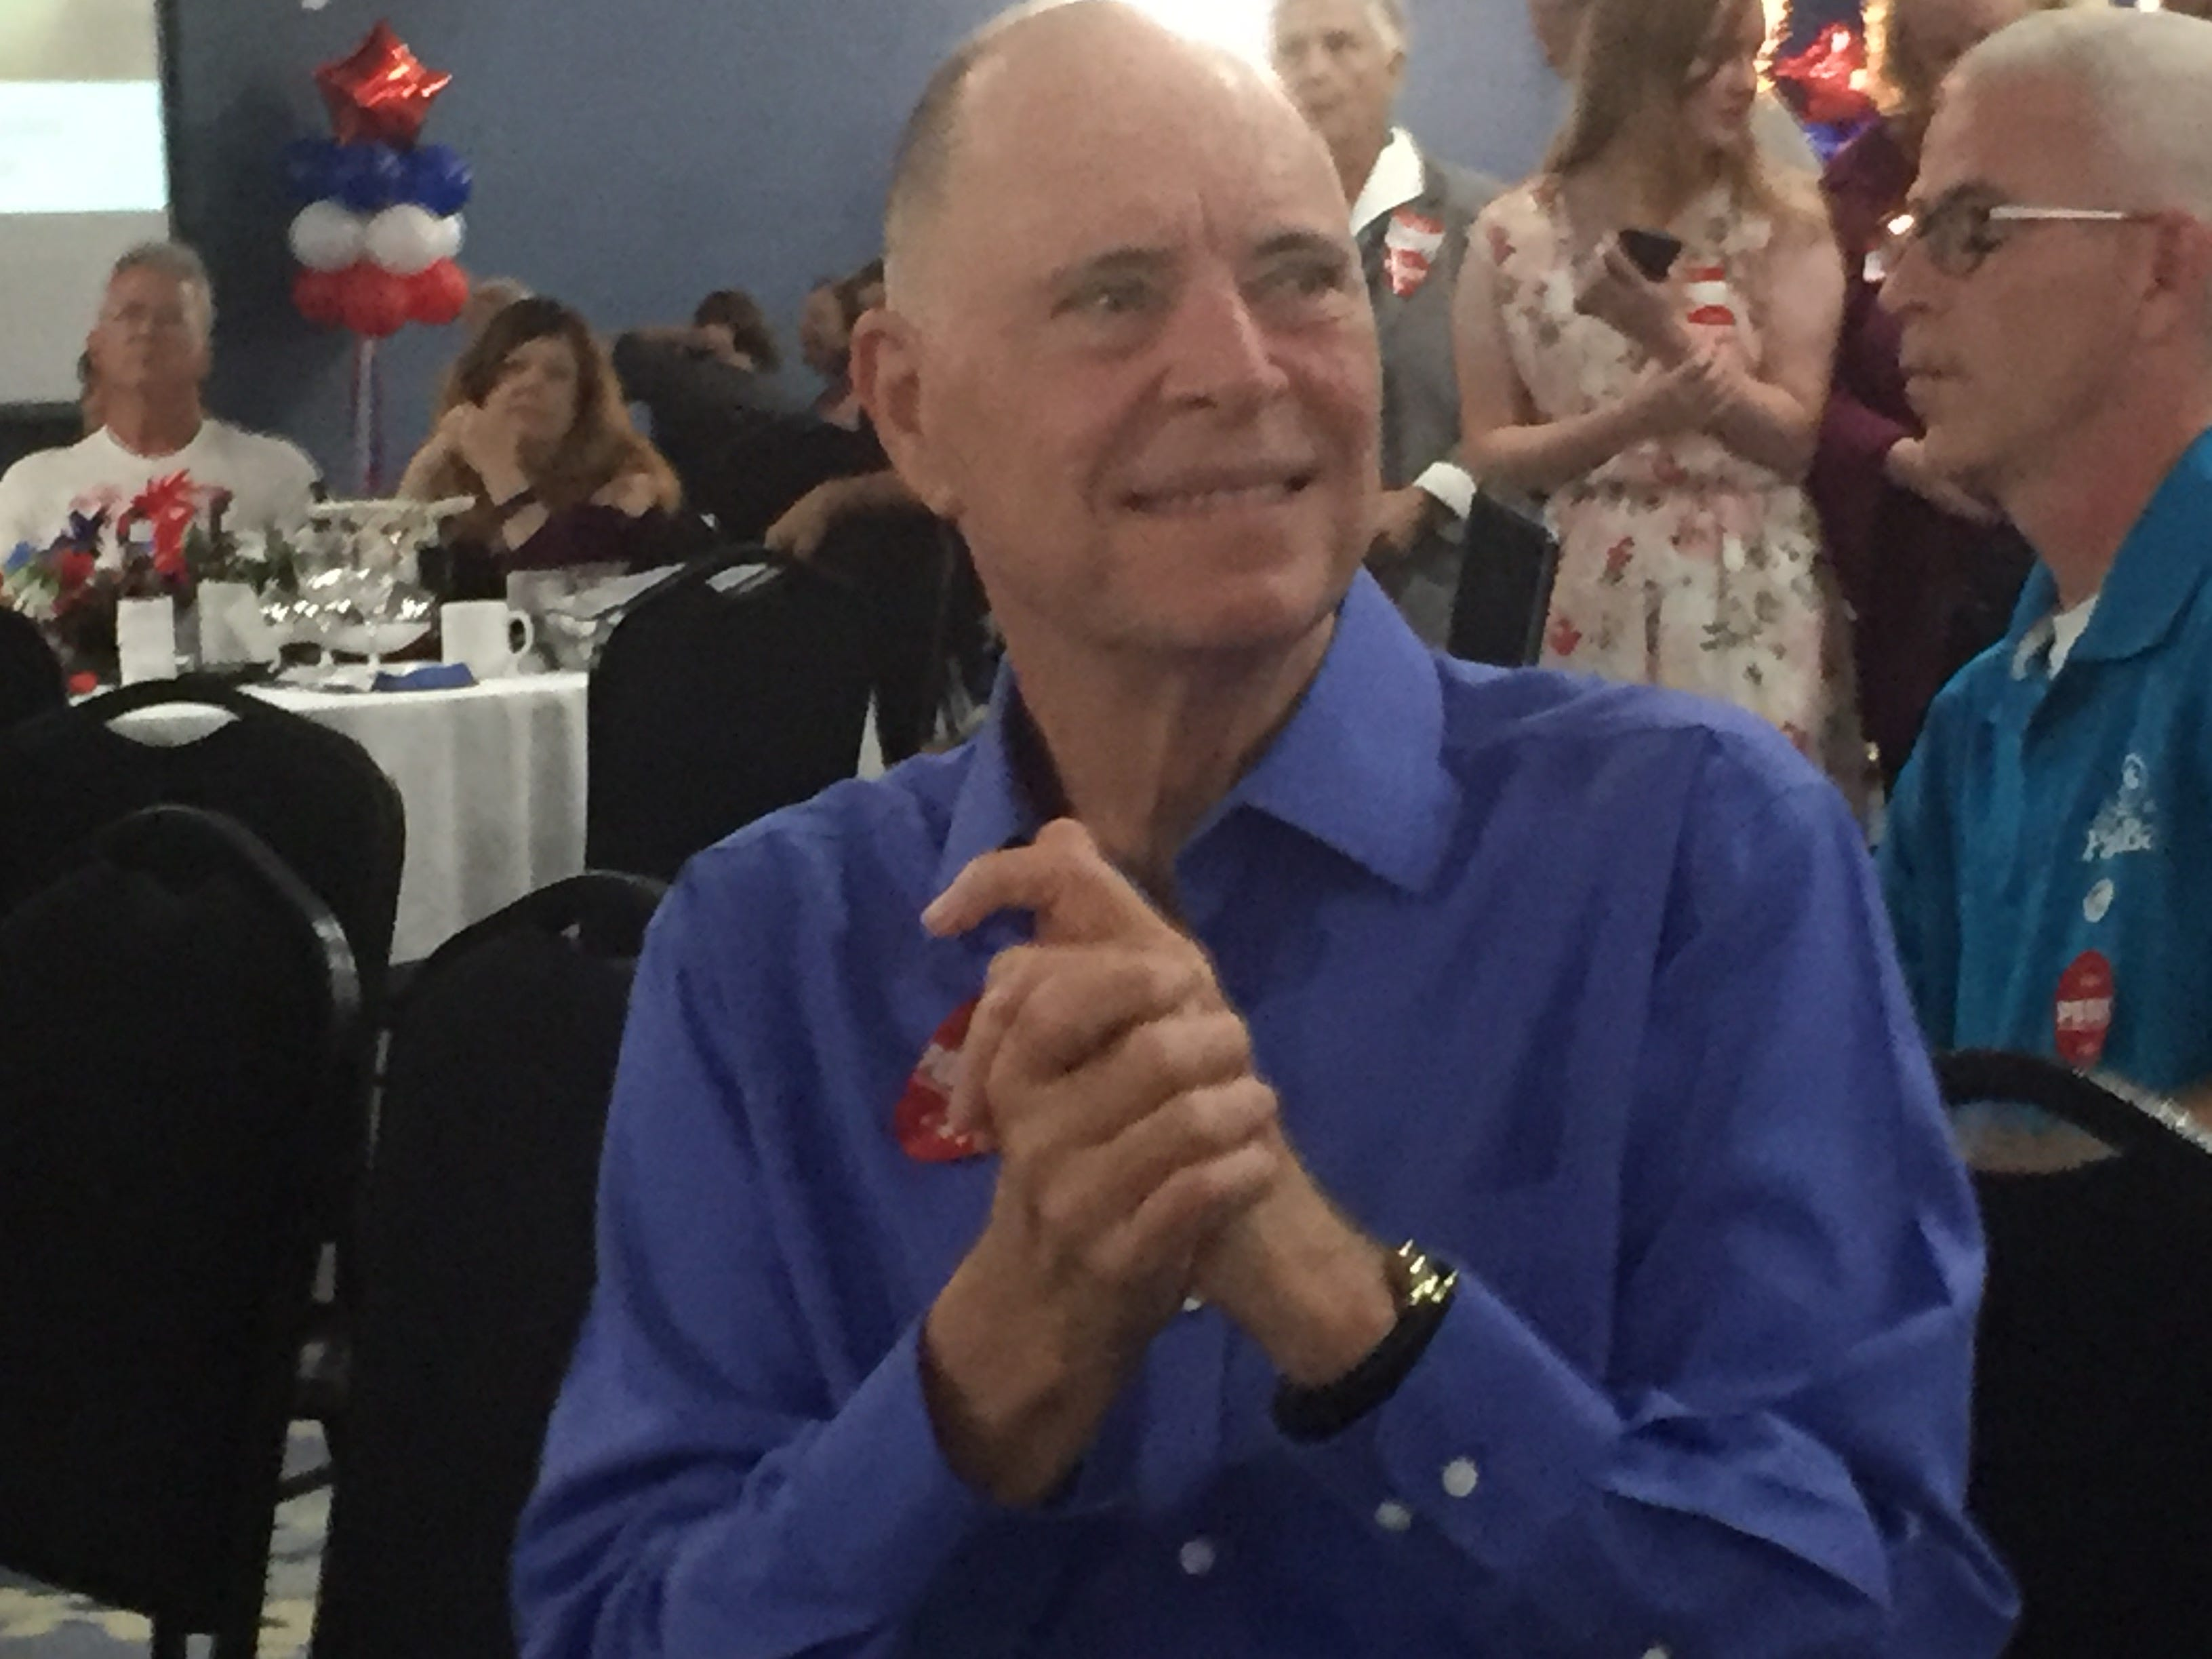 U.S. Rep Bill Posey is pictured as election results come in during a watch party at Holiday Inn in Viera.